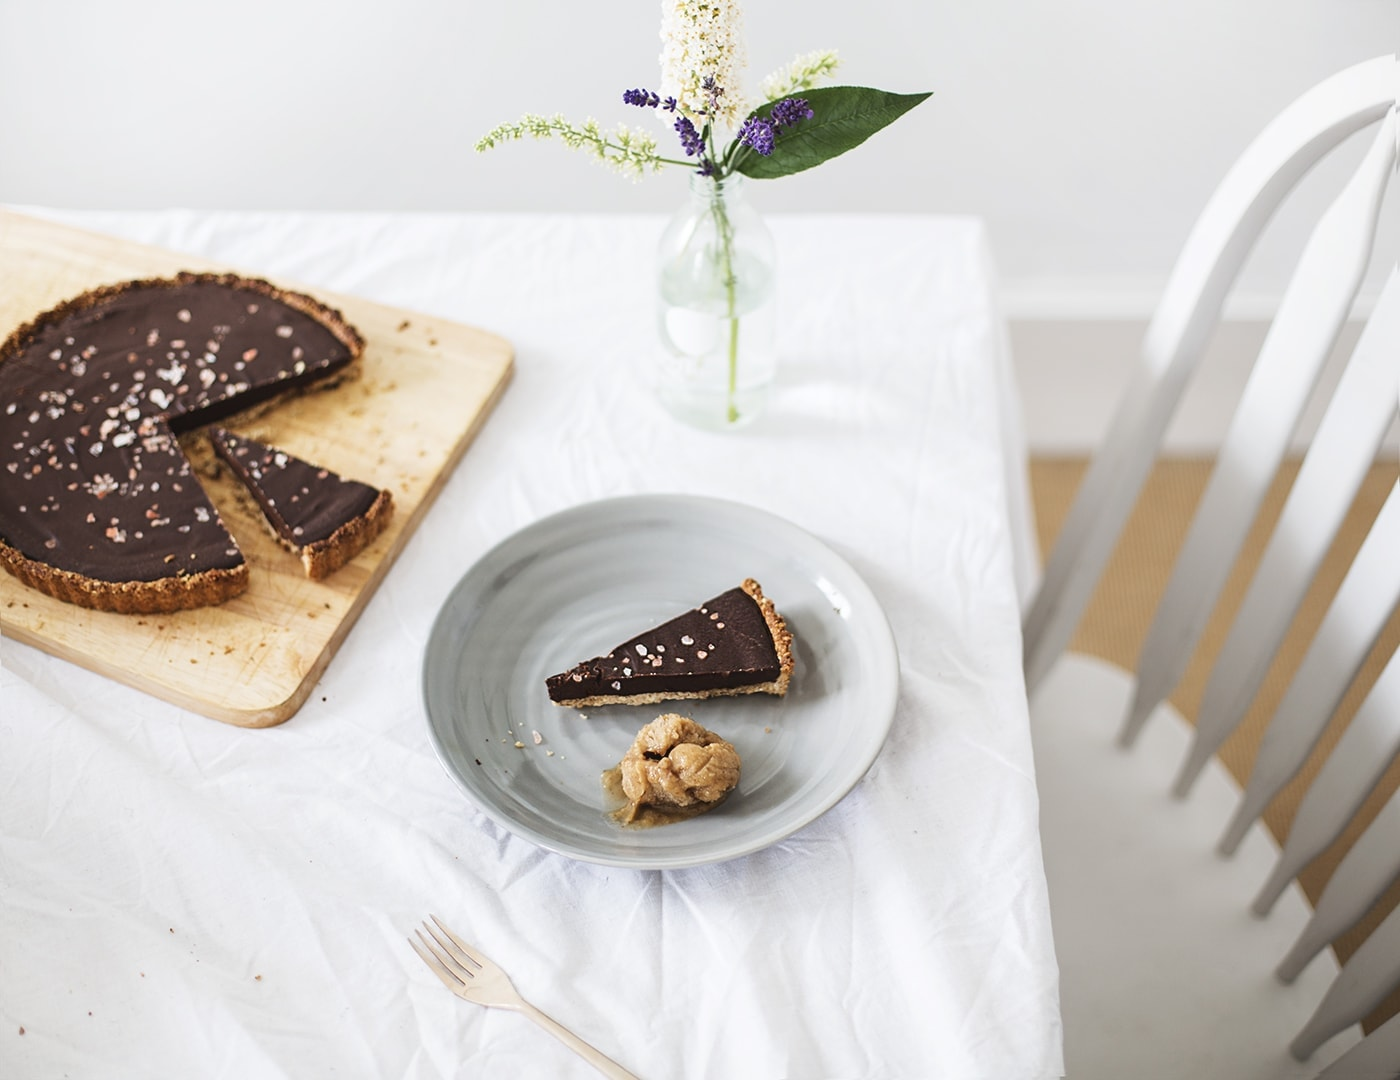 vegan gluten free chocolate tart recipe